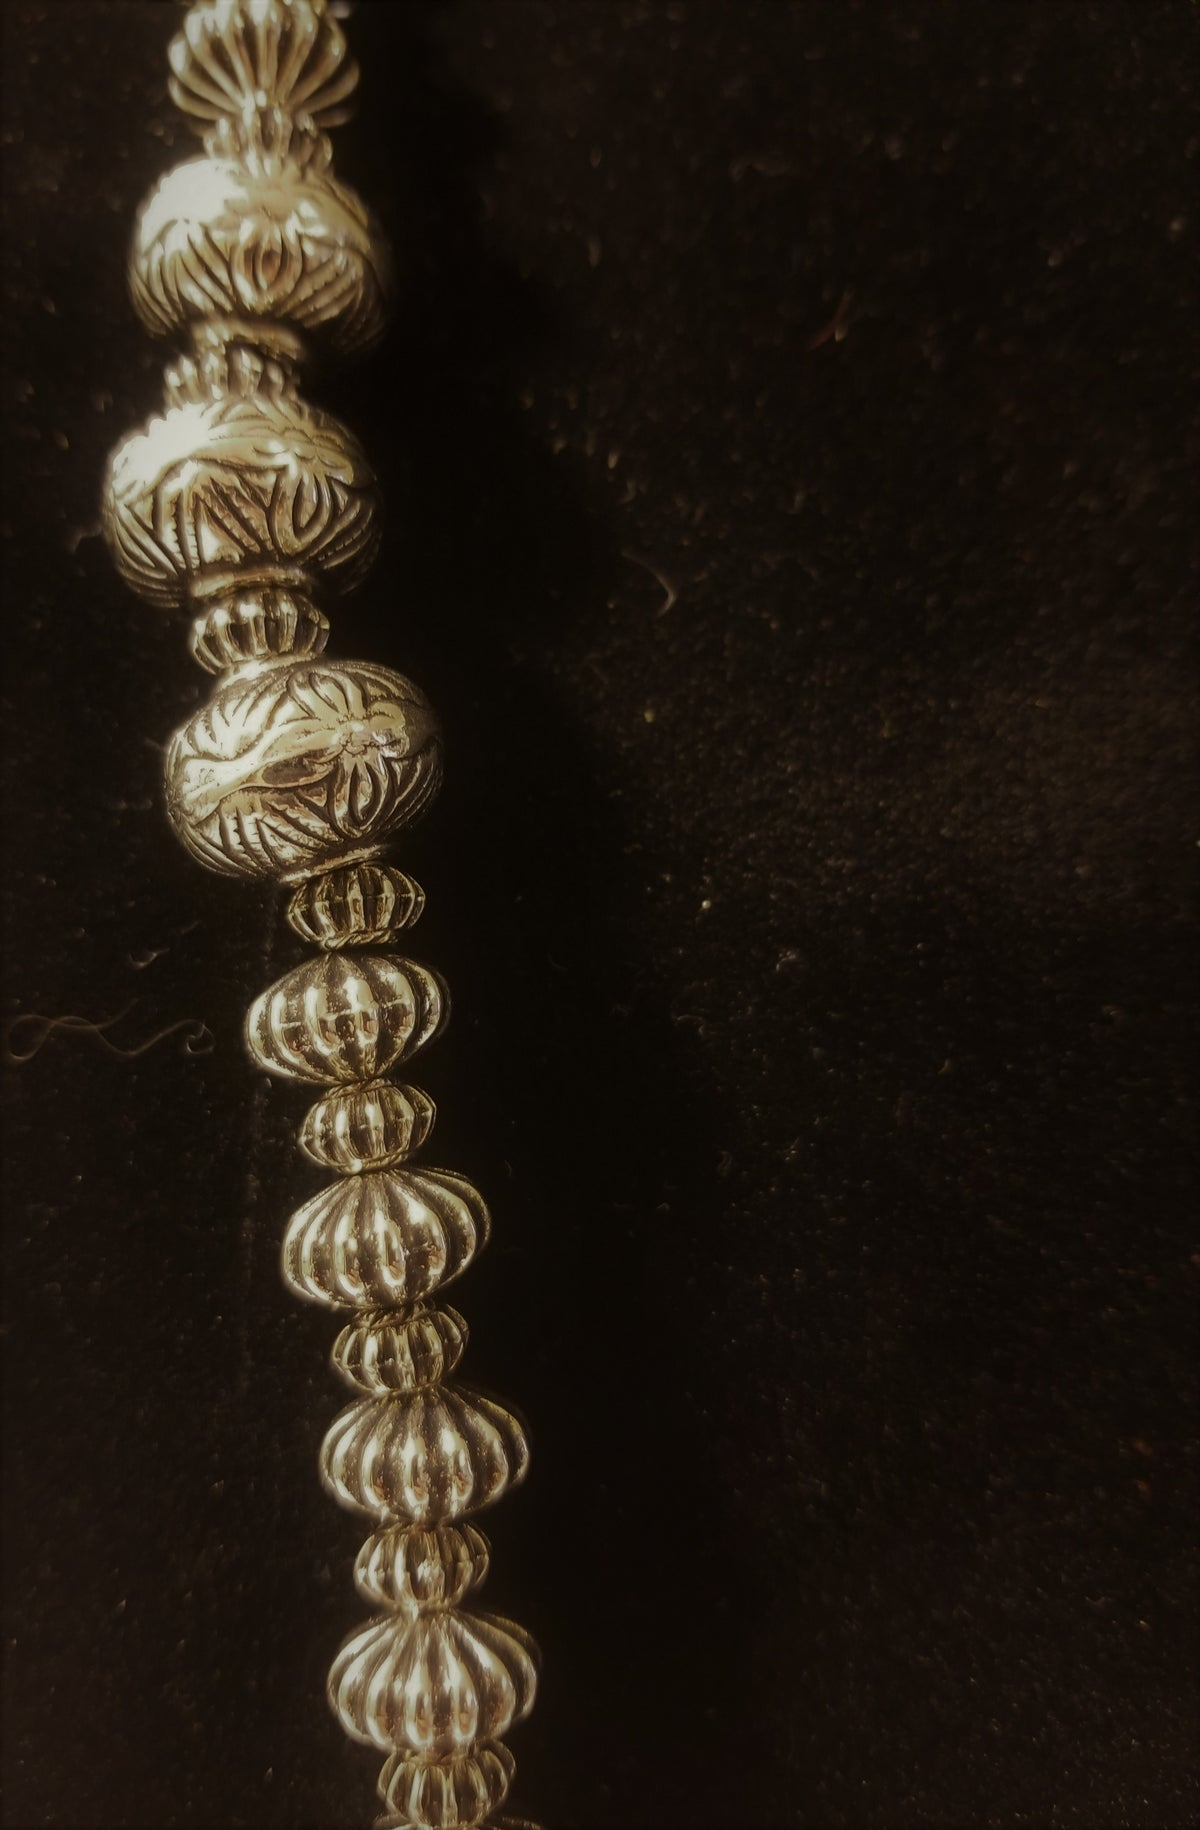 Silver Trading Bead Necklace